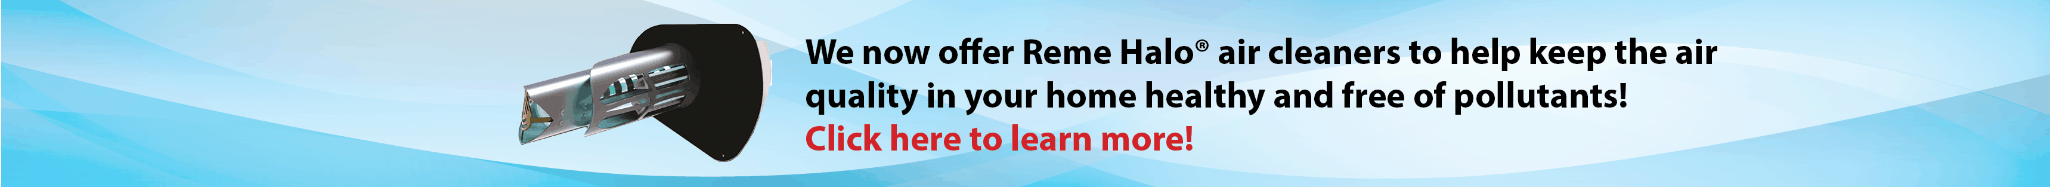 We now offer Reme Halo air cleaners to help keep the air quality in your home healthy and free of pollutants.